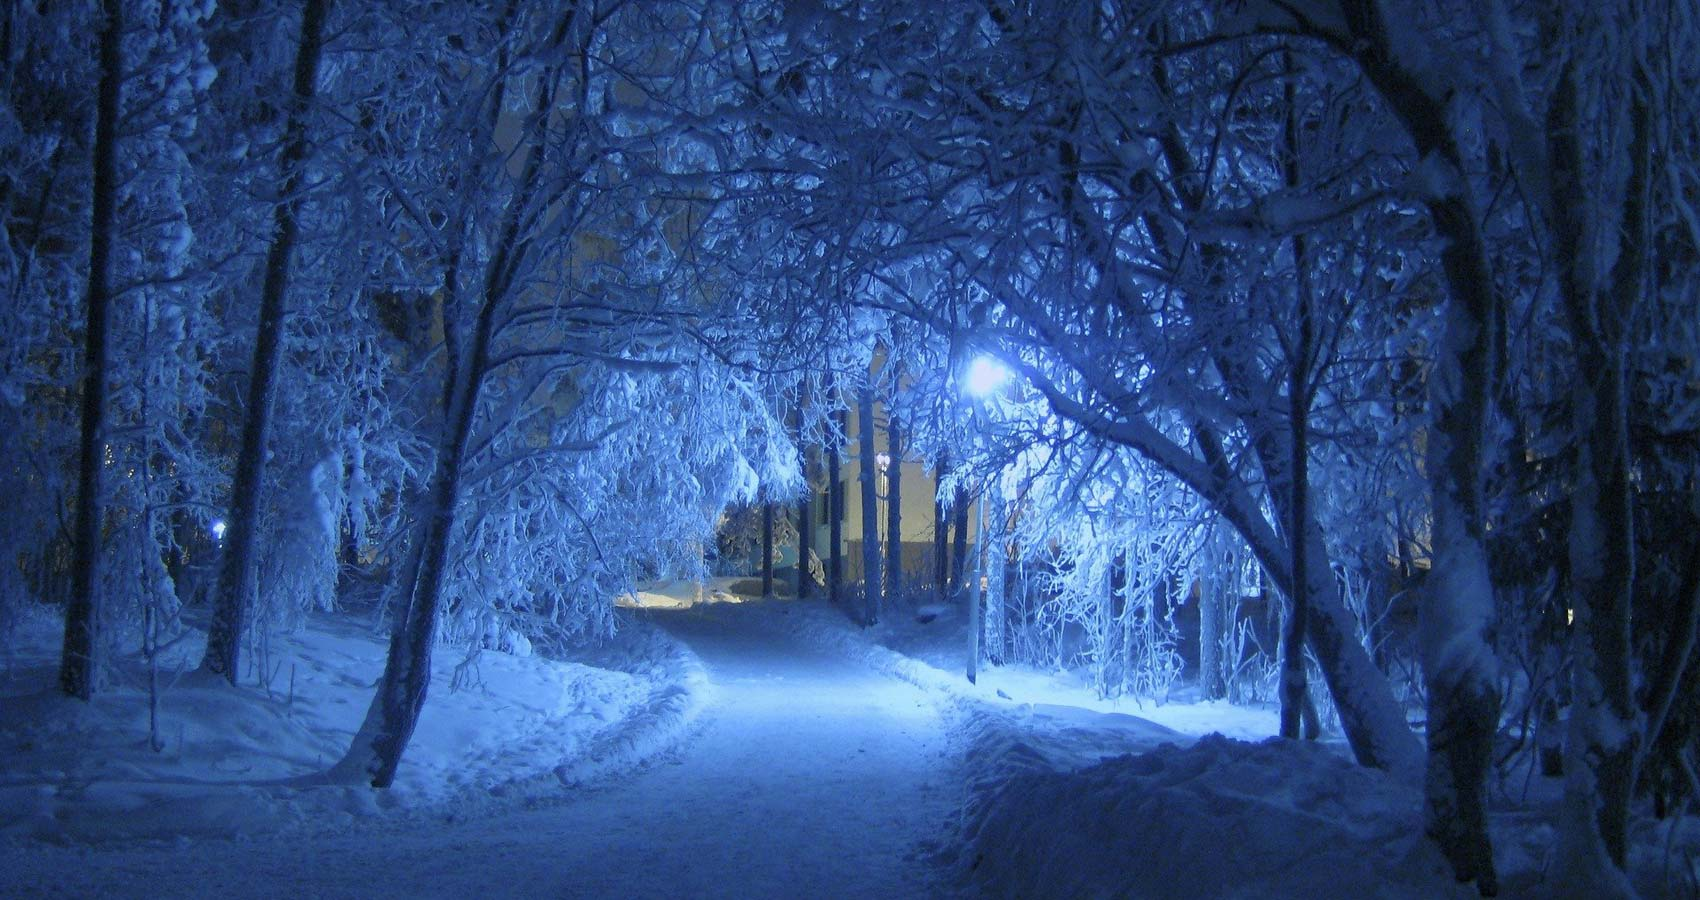 A Winter Night, a poem by Robert Burns at Spillwords.com